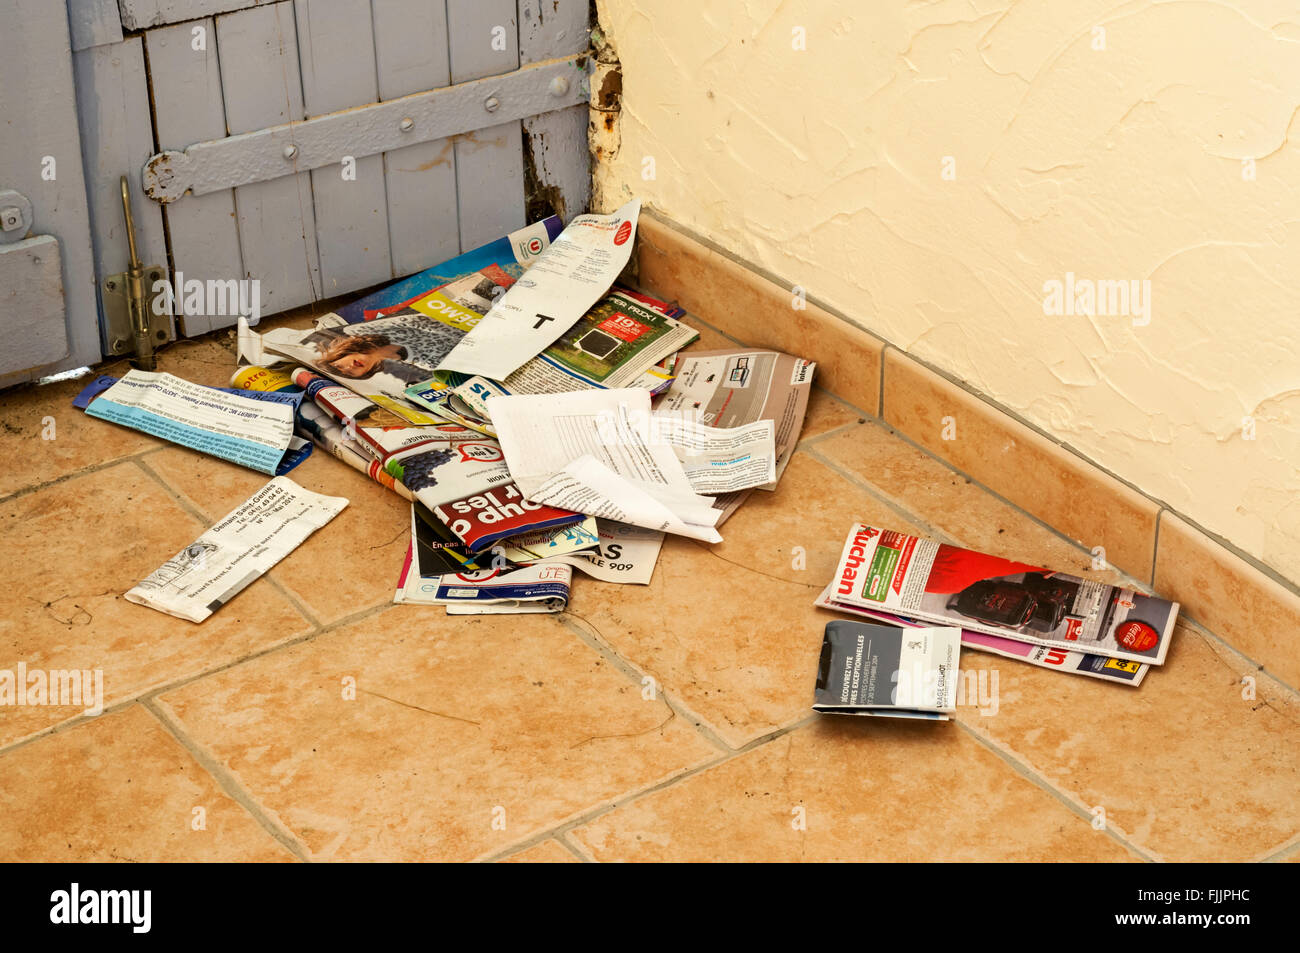 Junk mail on floor behind door of an empty property. - Stock Image